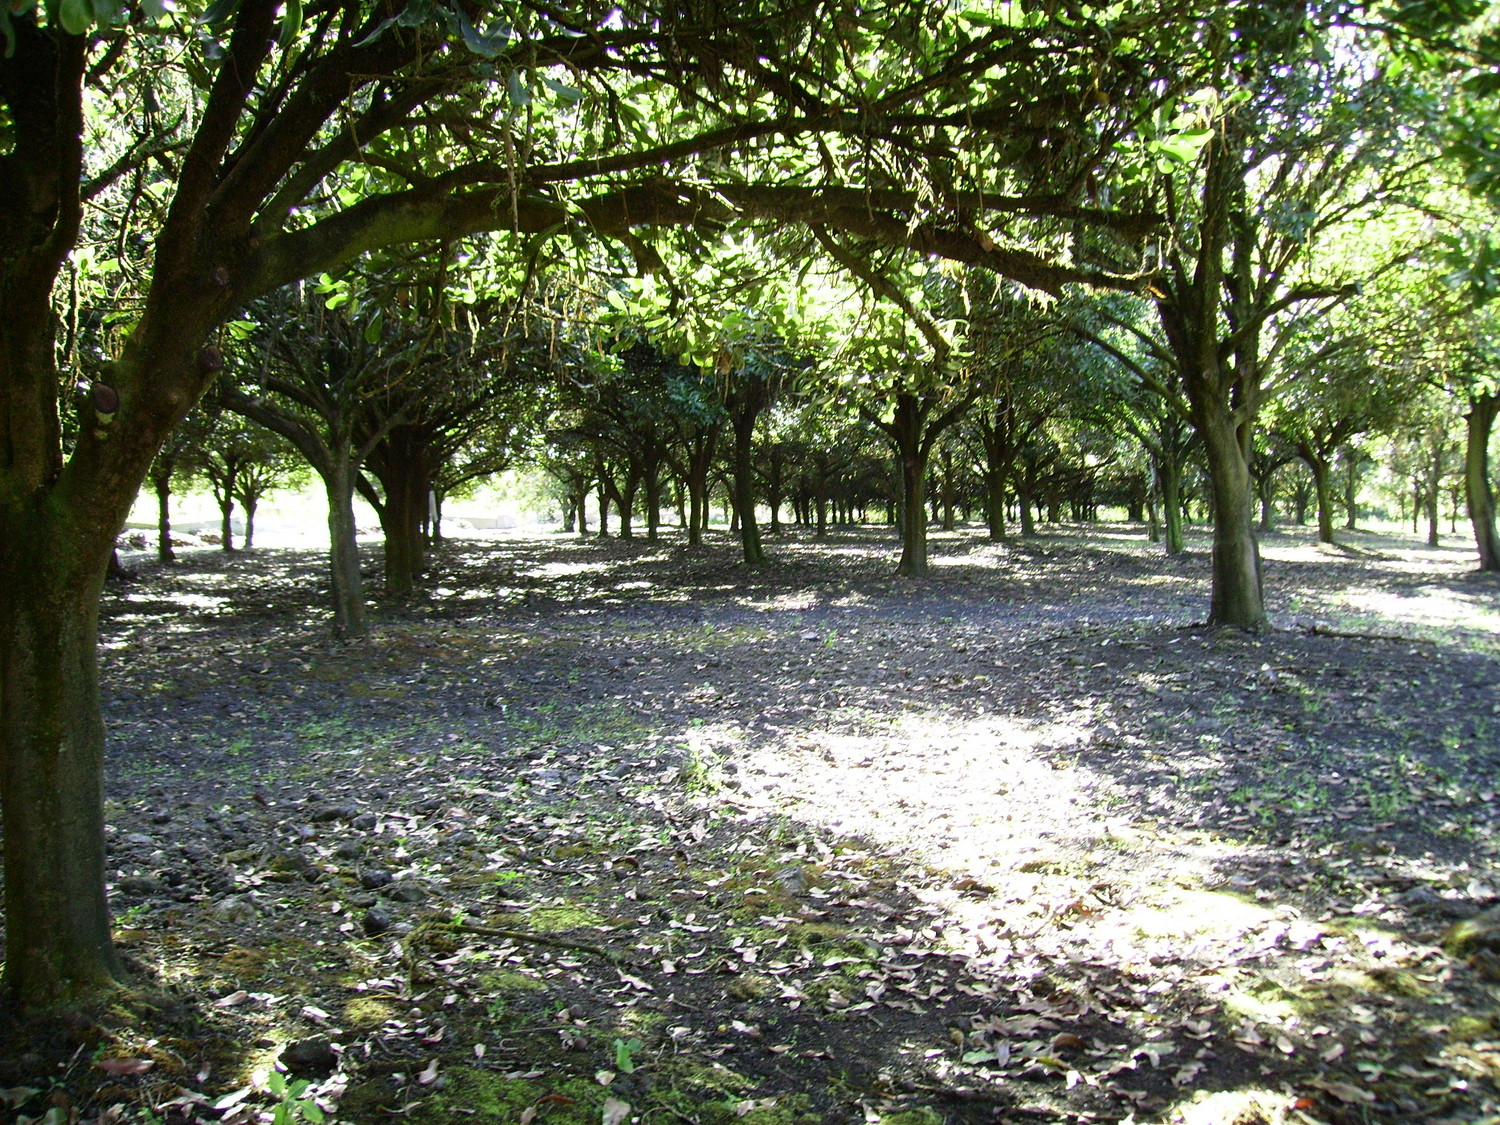 A look down the macadamia orchard on a beautiful sunny day.